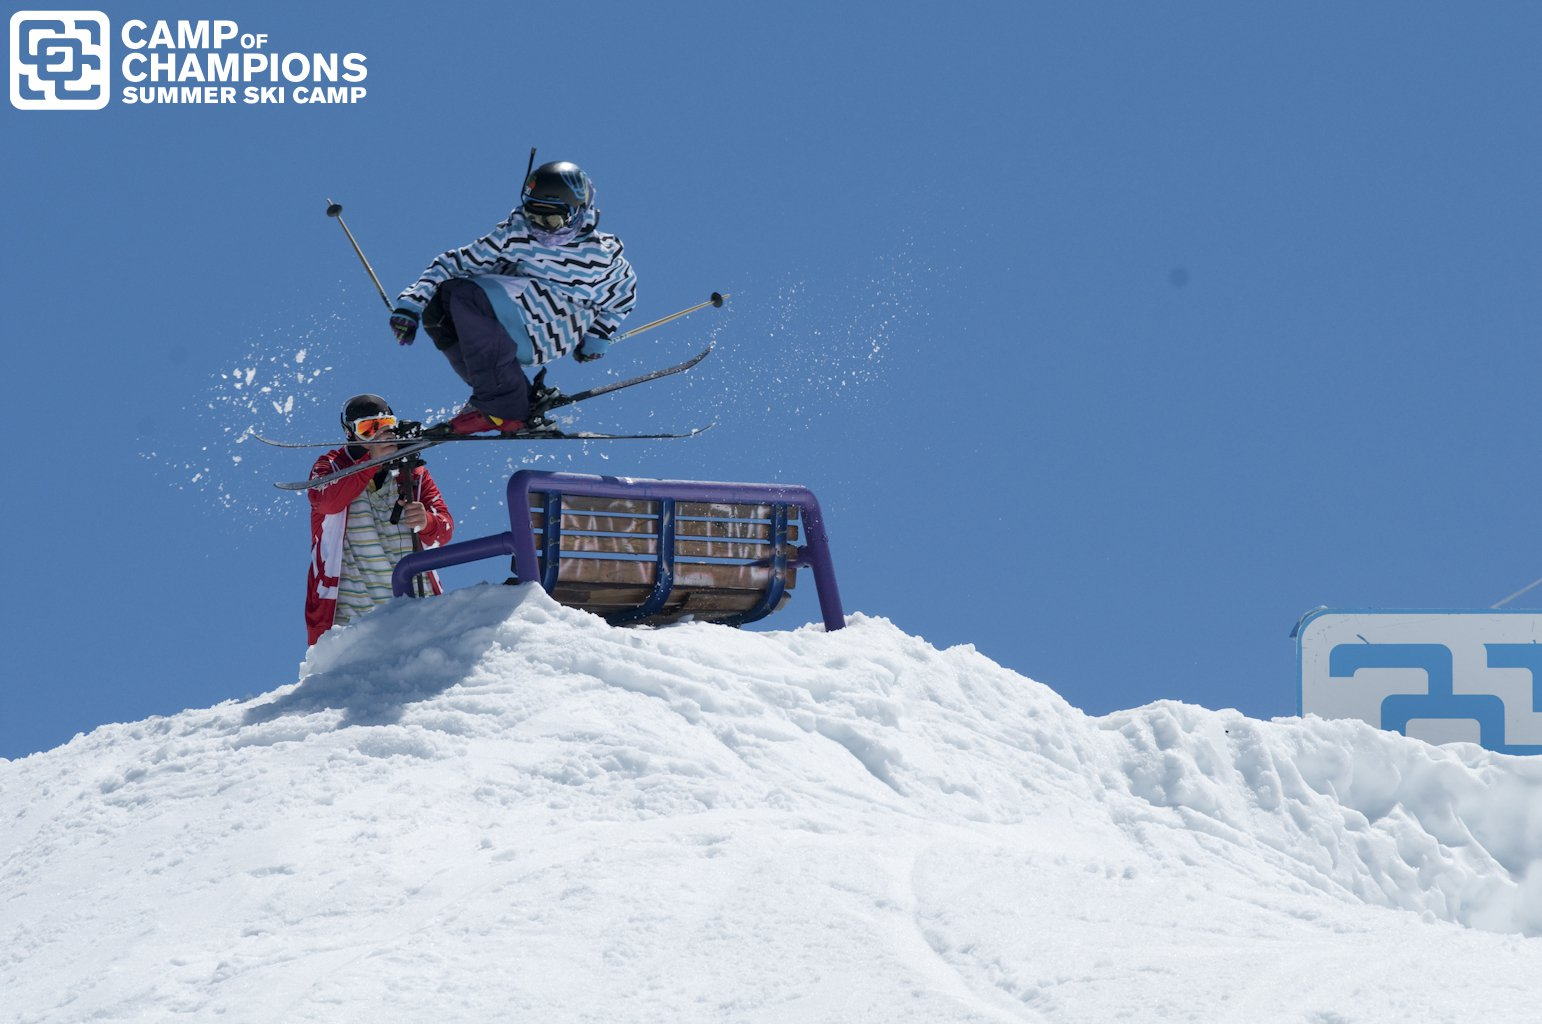 The Camp of Champions